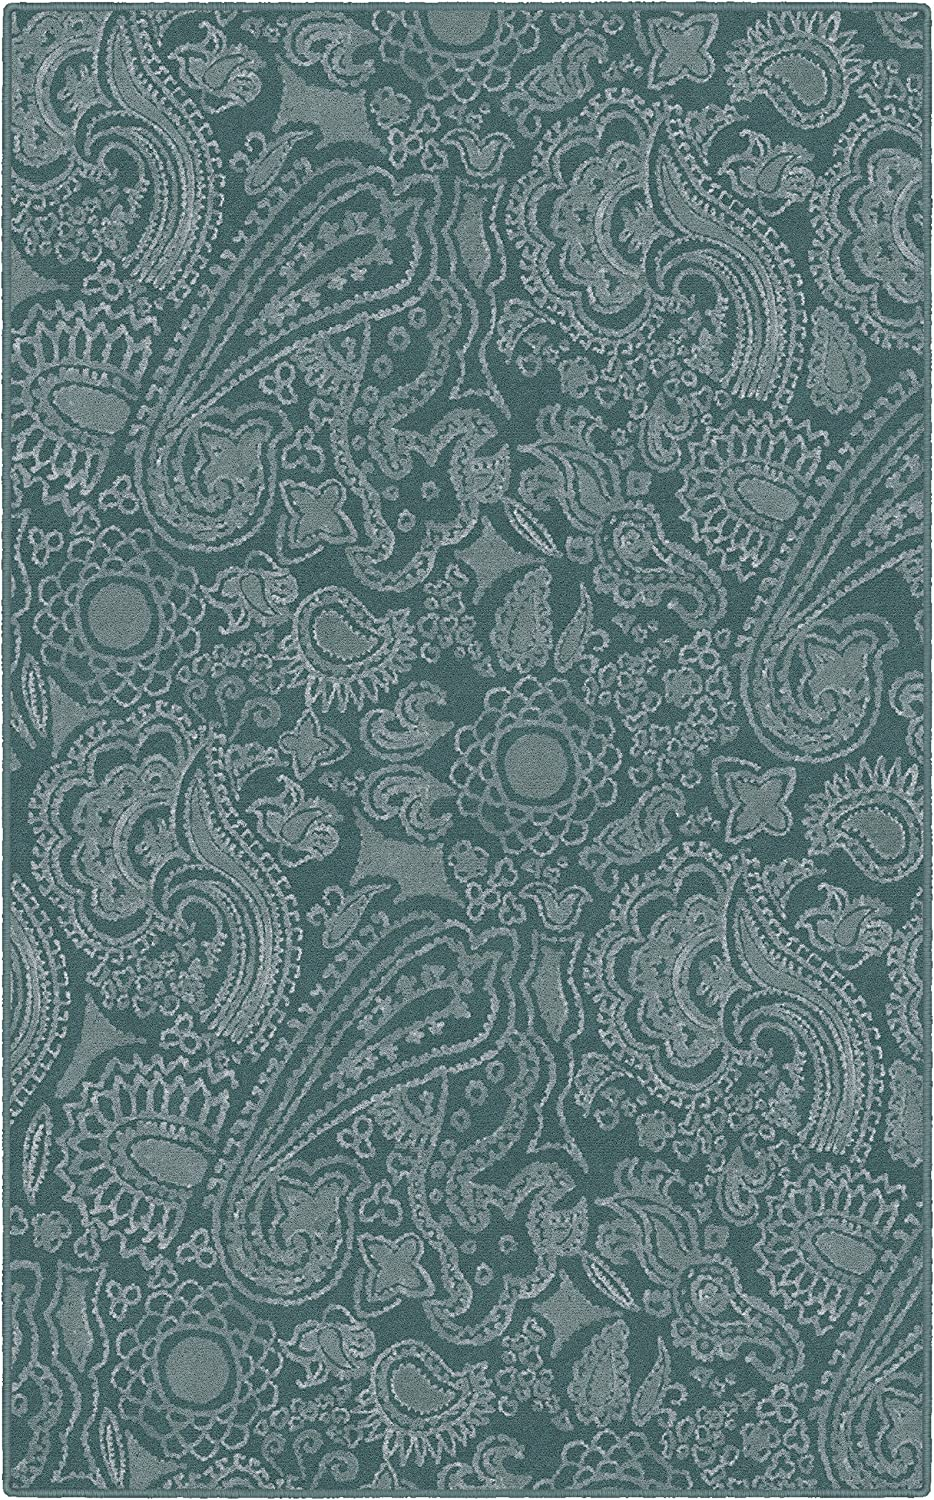 Brumlow Mills Contemporary Modern Paisley Pattern Decorative Area Rug for Home Décor, Living Room, Bedroom, Kitchen, Dining or Doorway Mat, 2'6